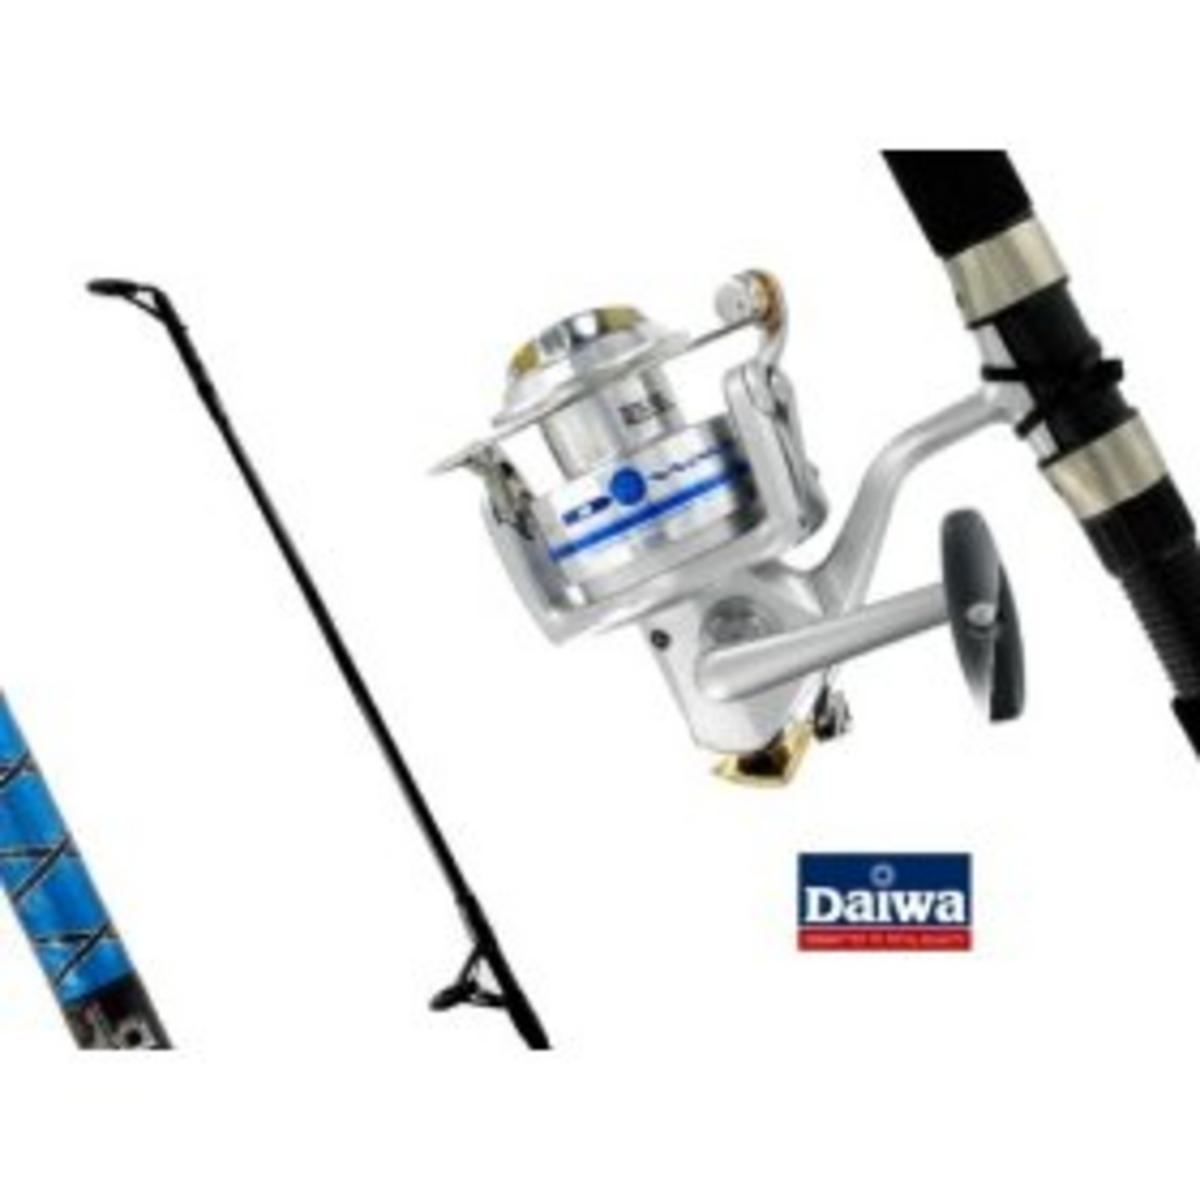 DAIWA D-WAVE 40 COMBO 8' 20LB  Model No DWV40-B/F802M-20C SPINNING REEL